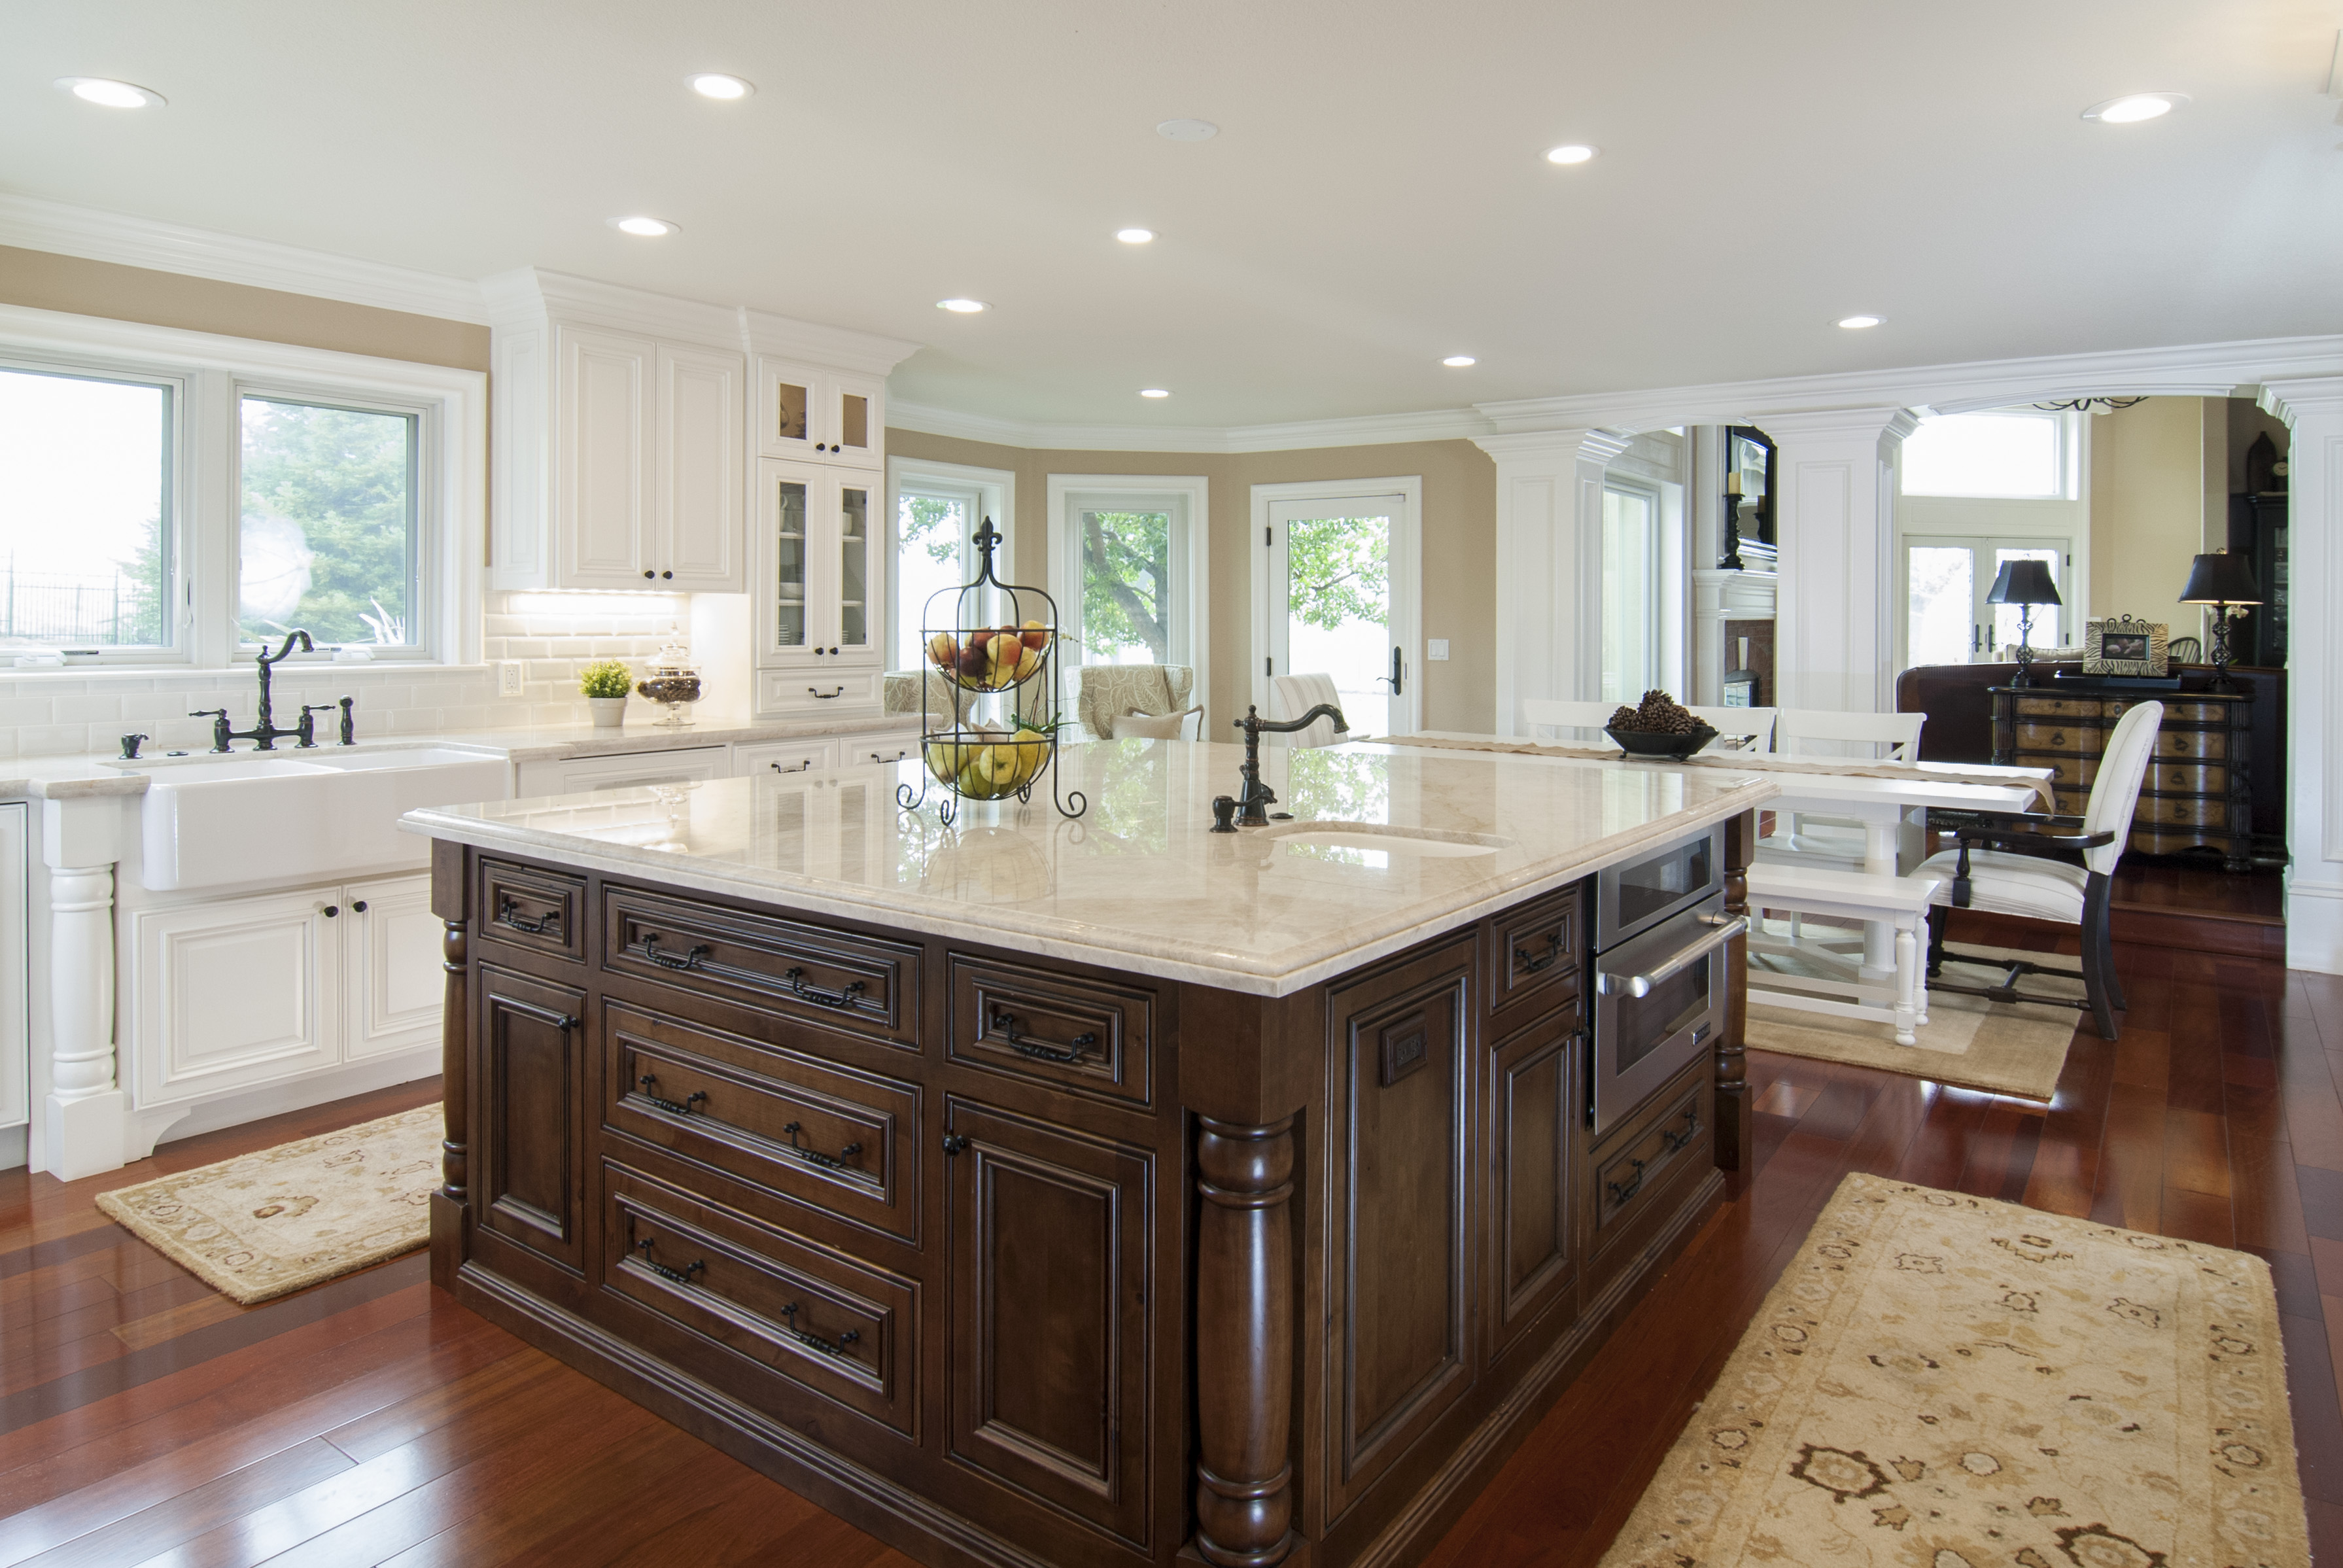 Traditional Stained And Painted Kitchen With Stainless Steel Appliances And  A Beautiful Farm House Sink